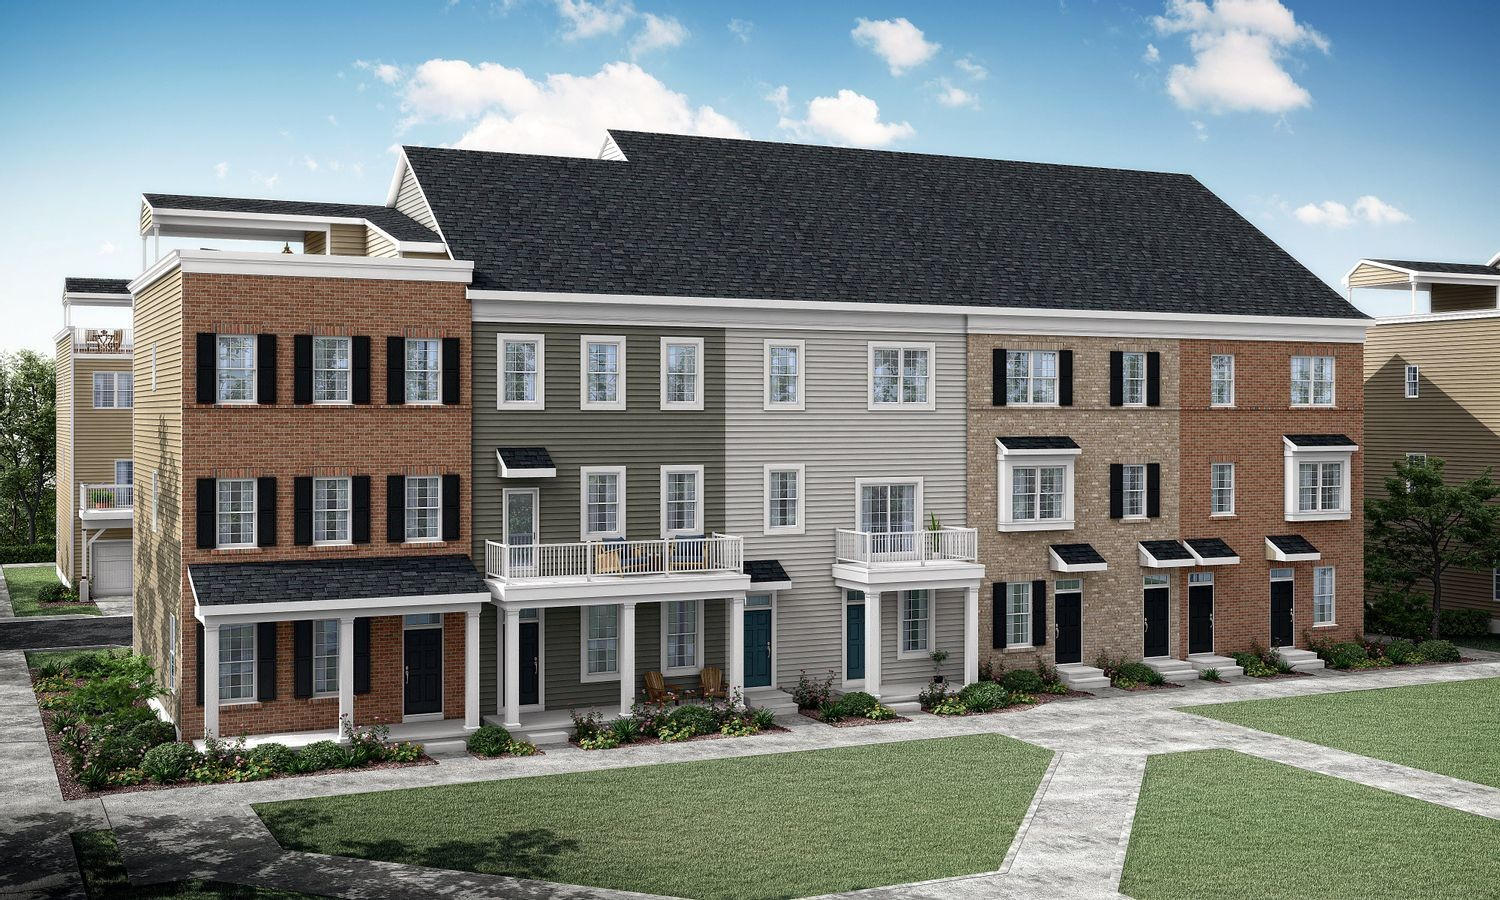 Ready To Build Home In Waterside By Lennar - Waterside Traditional Towns Community